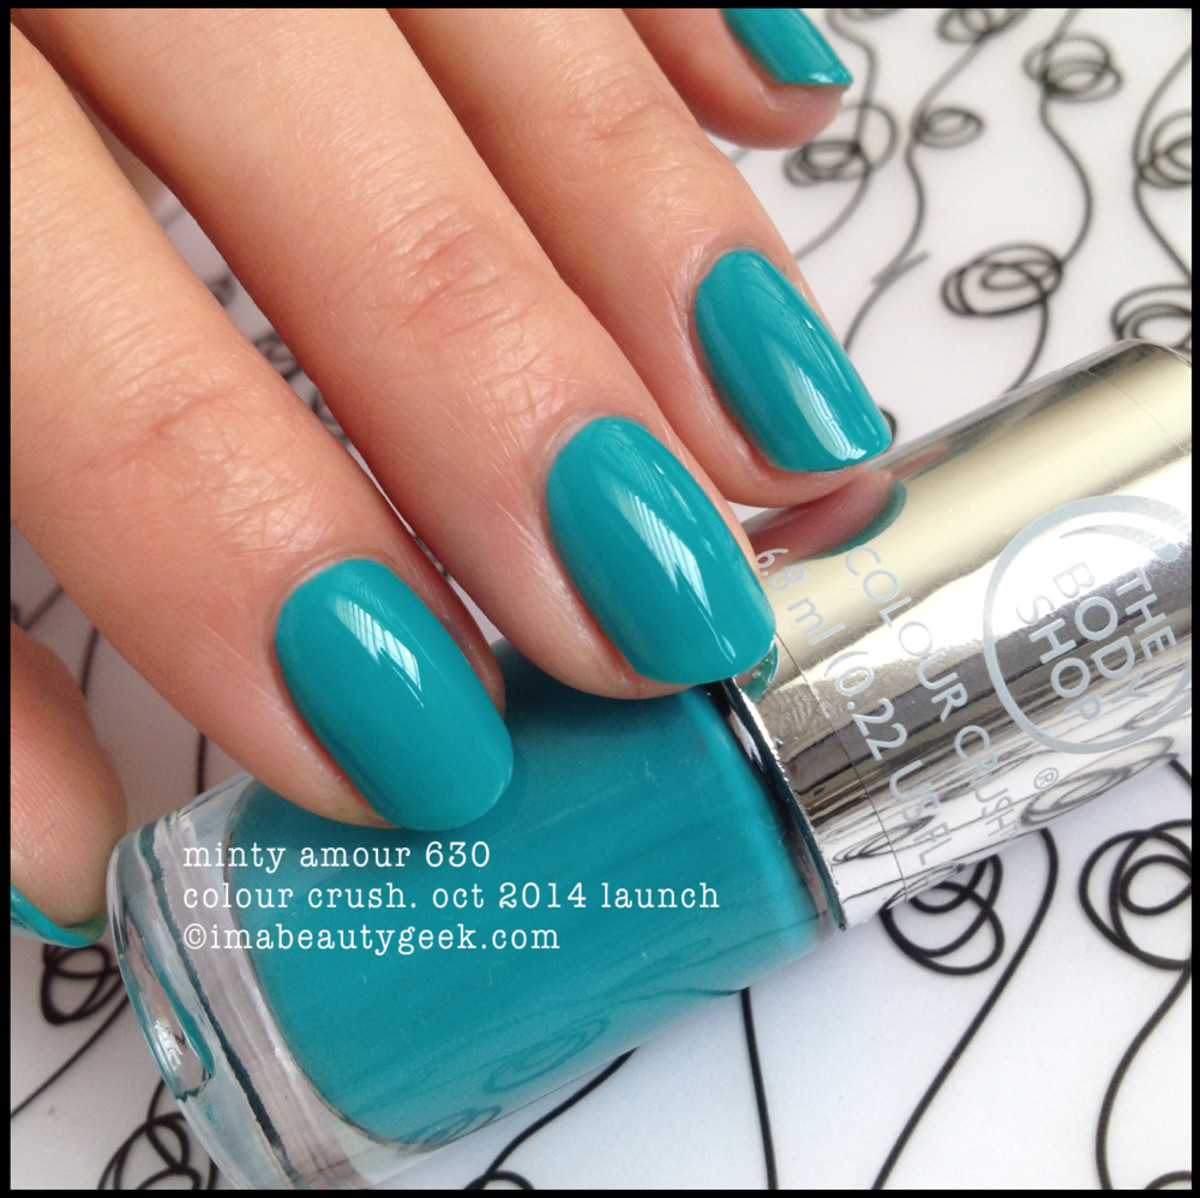 Body Shop Polish Minty Amour 630 Colour Crush